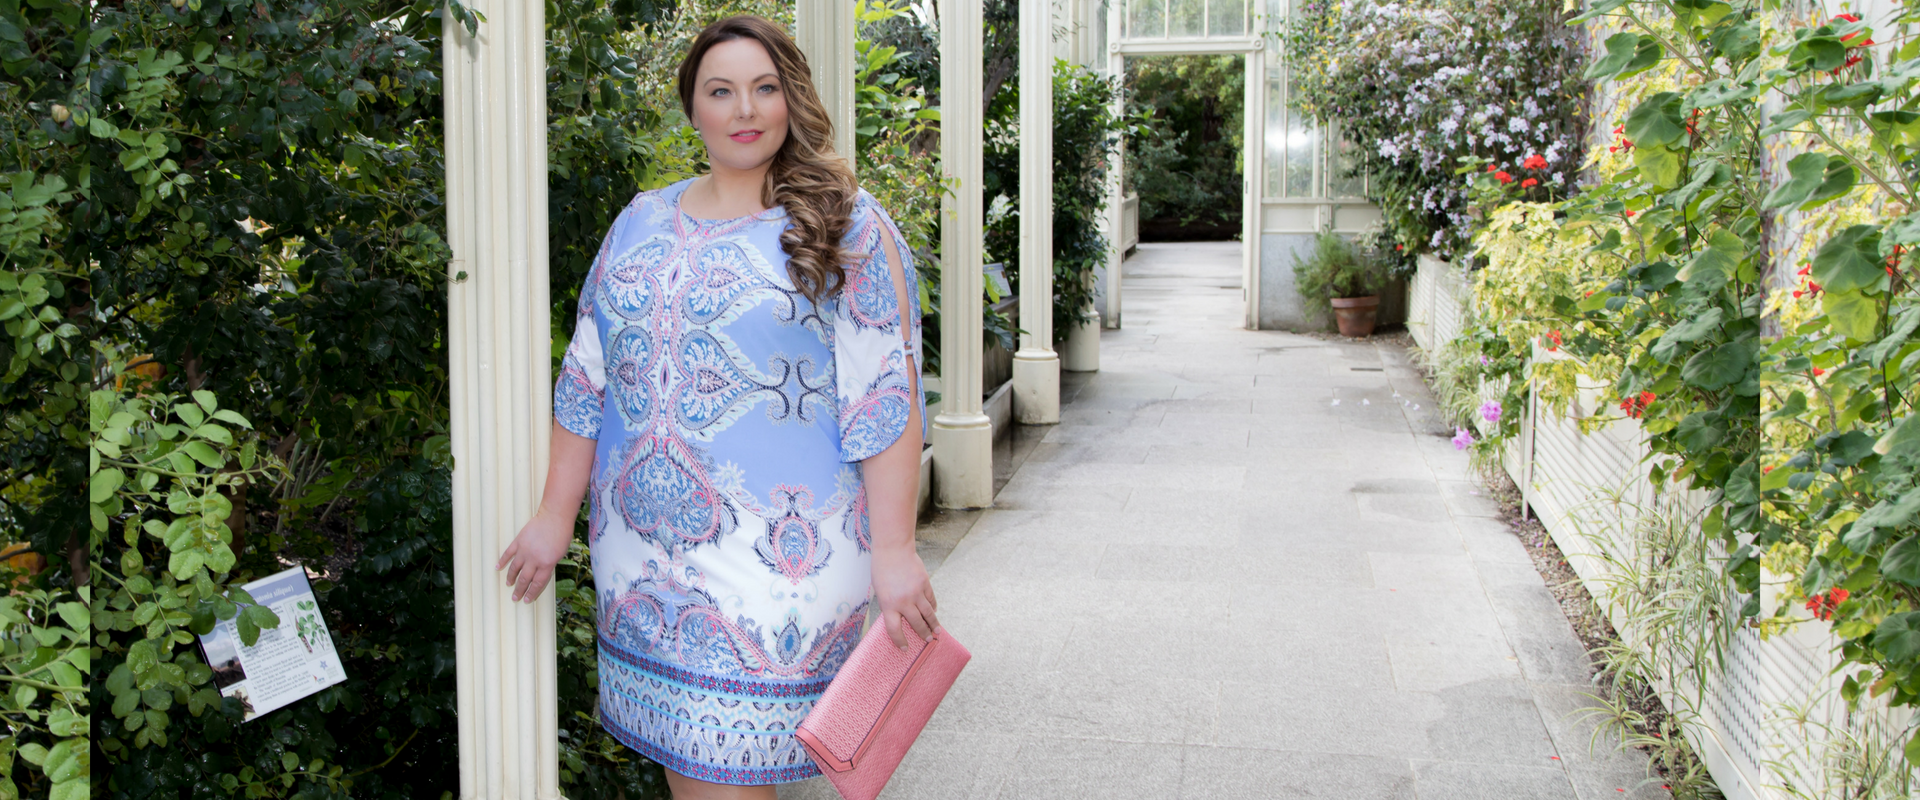 f13a80ecf5 Home Plus Size Ladies Clothing from Tempted Raheny Dublin Ireland